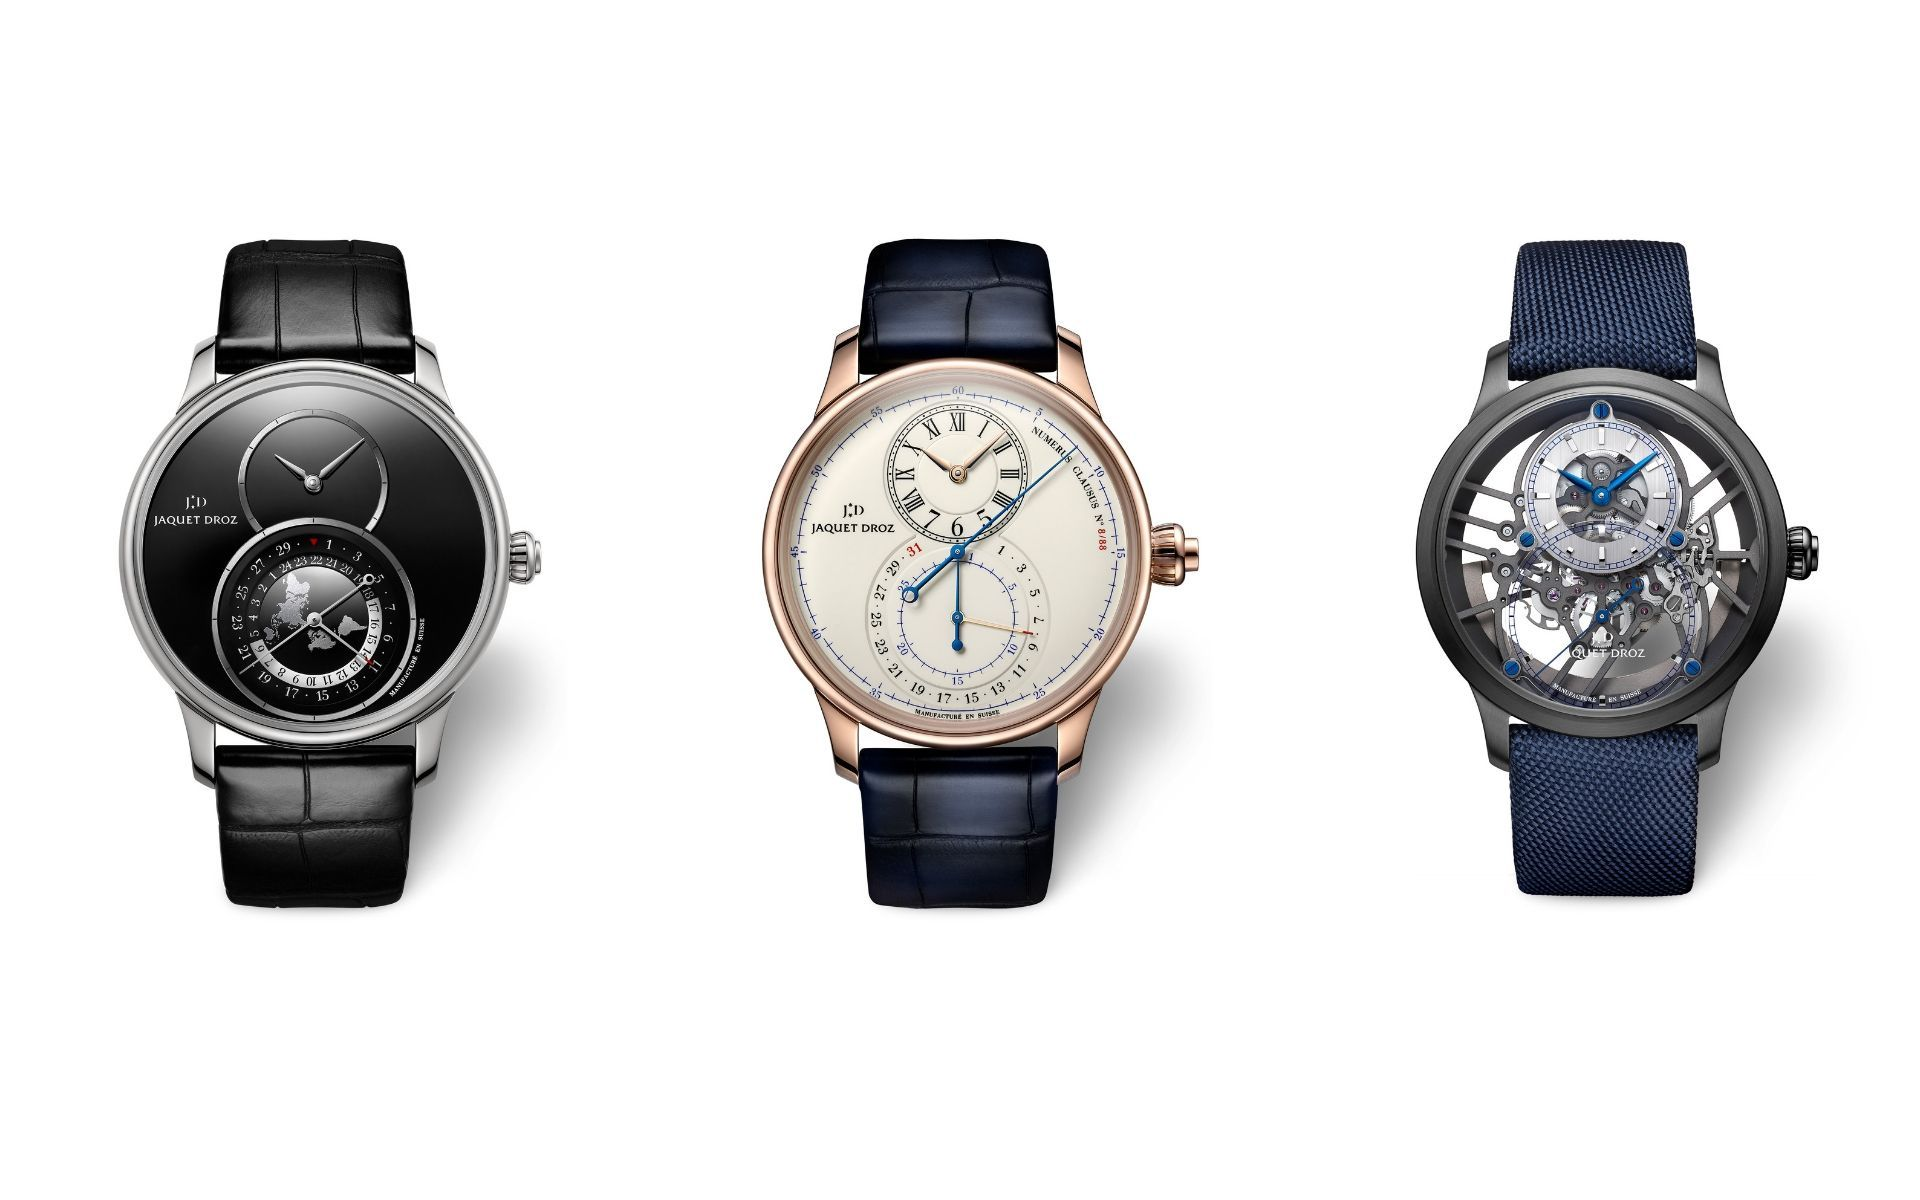 The Fascinating New Faces Of Jaquet Droz Grande Seconde